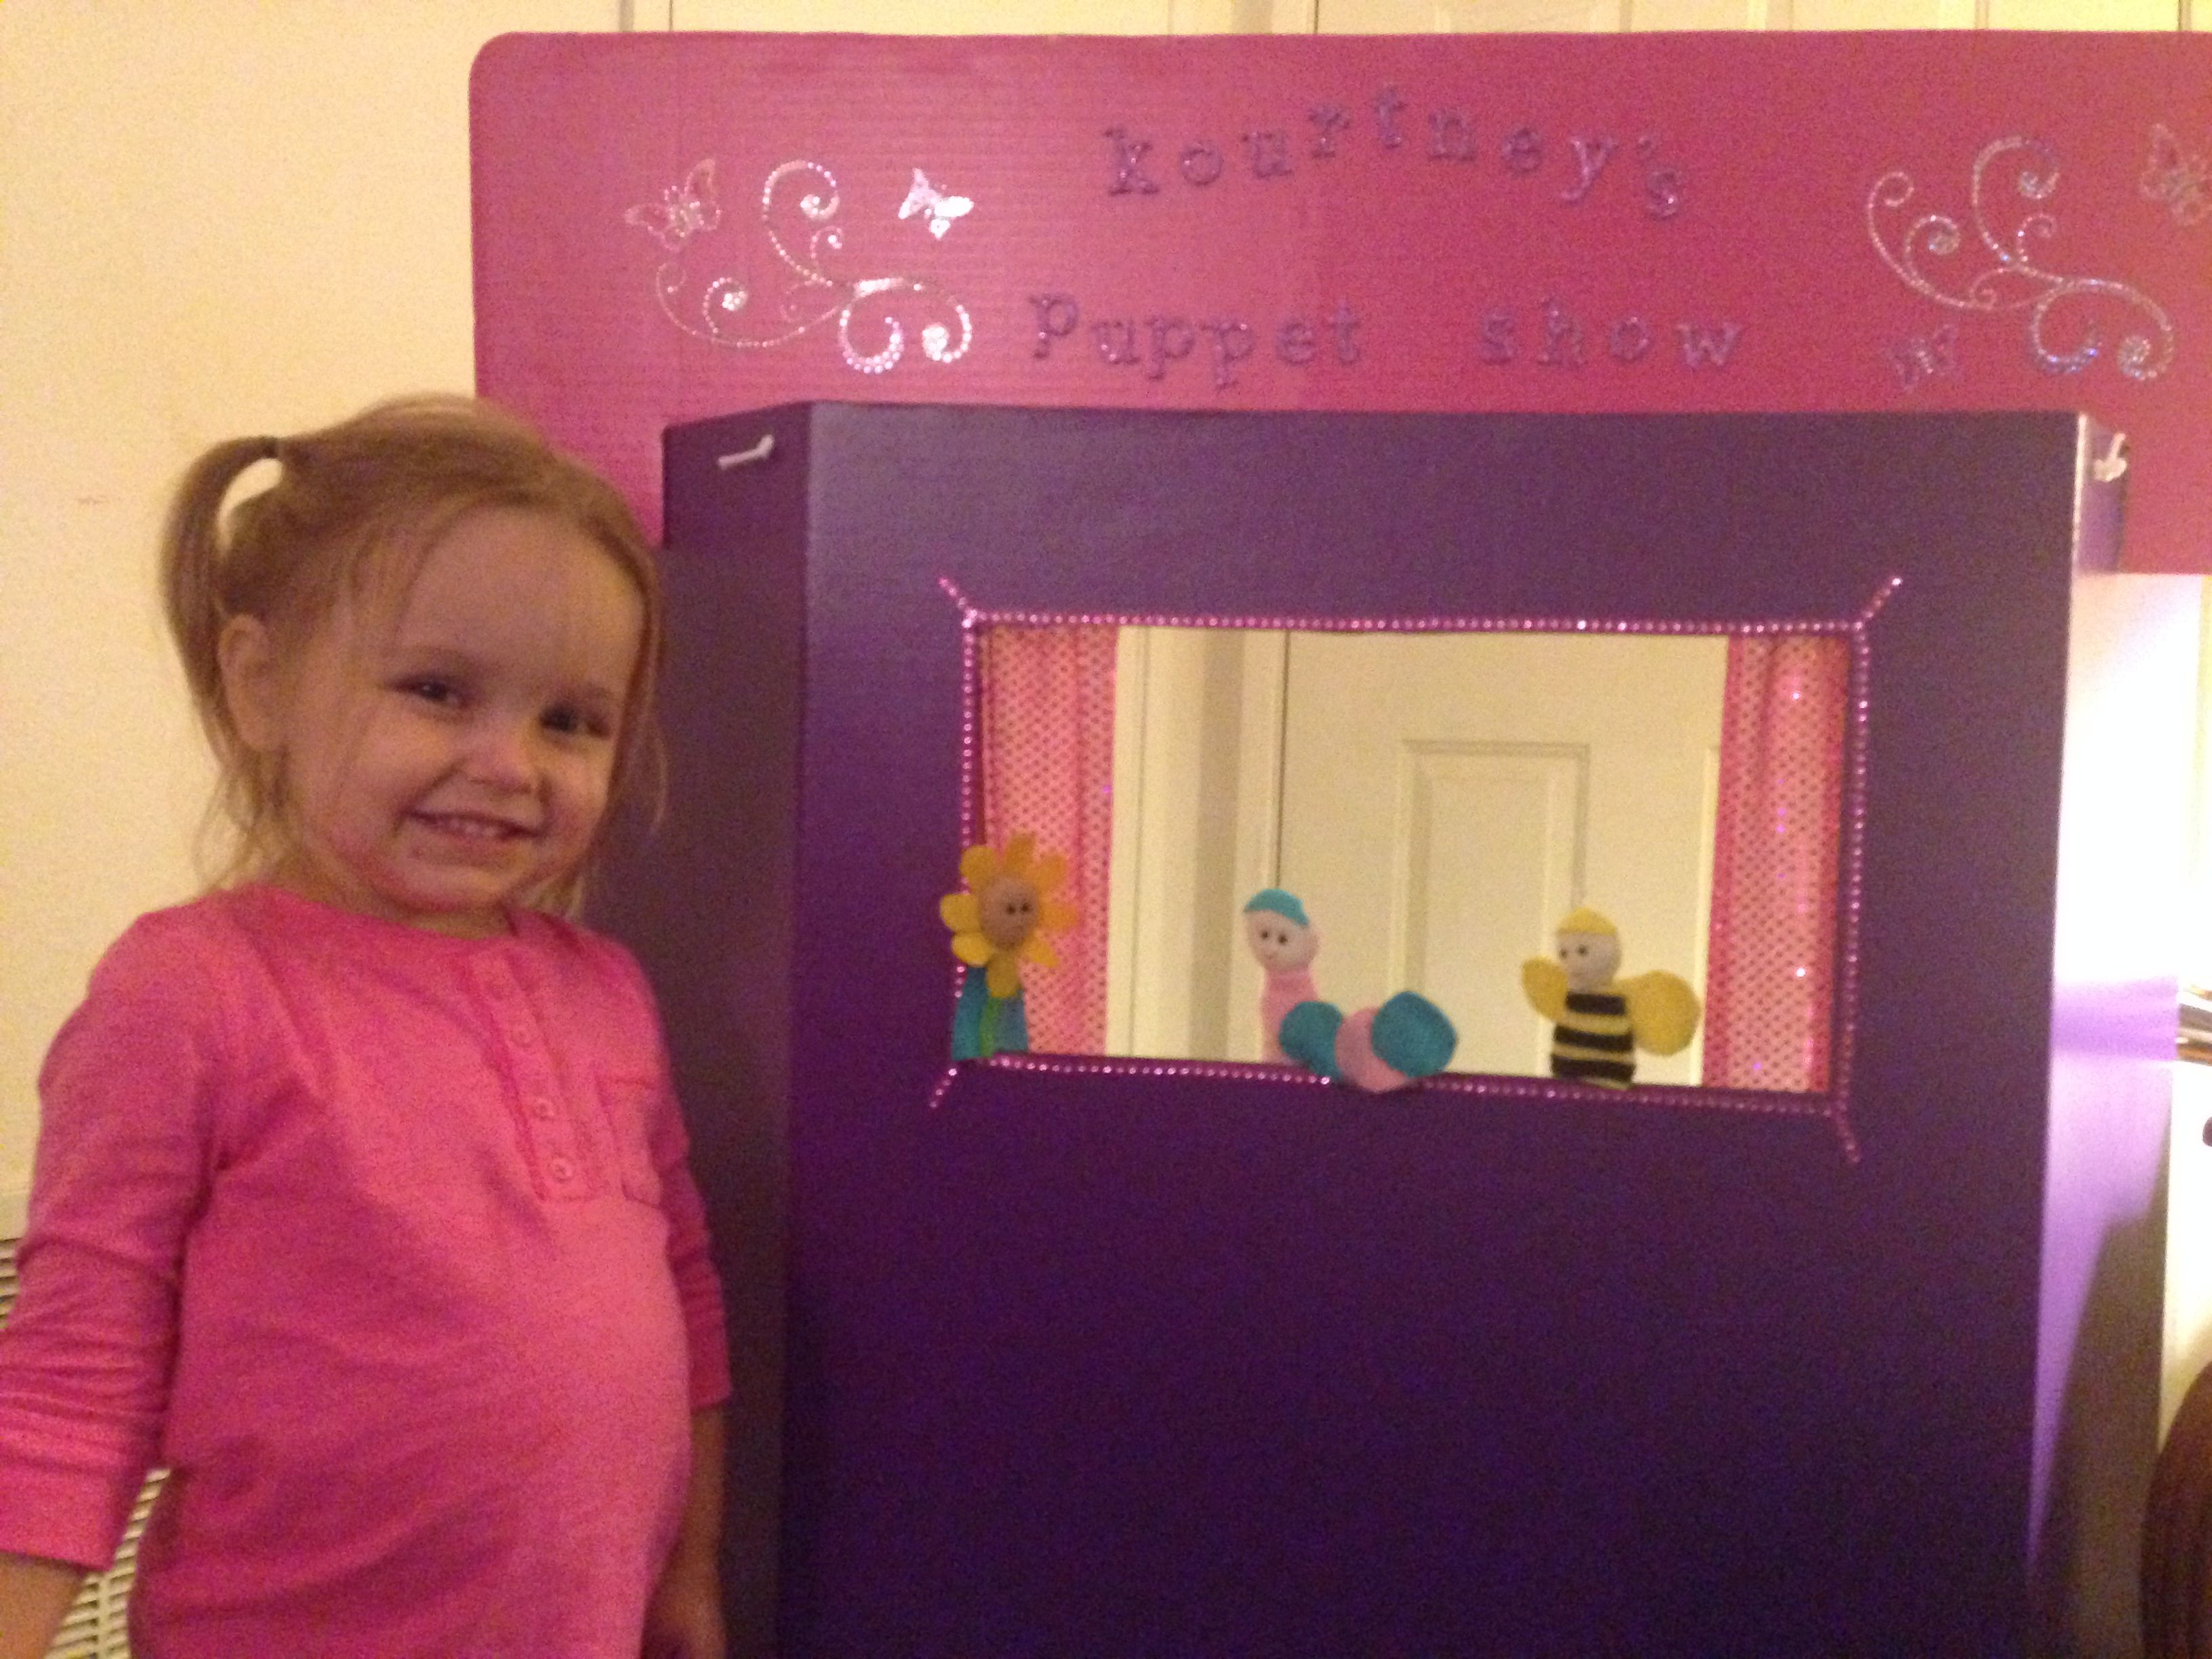 Easy Puppet Theater I Made For My Granddaughter Hobby Lobby Carries The Tri Fold Cardboard Displays In All Different Col Cardboard Display Finger Puppets Kids